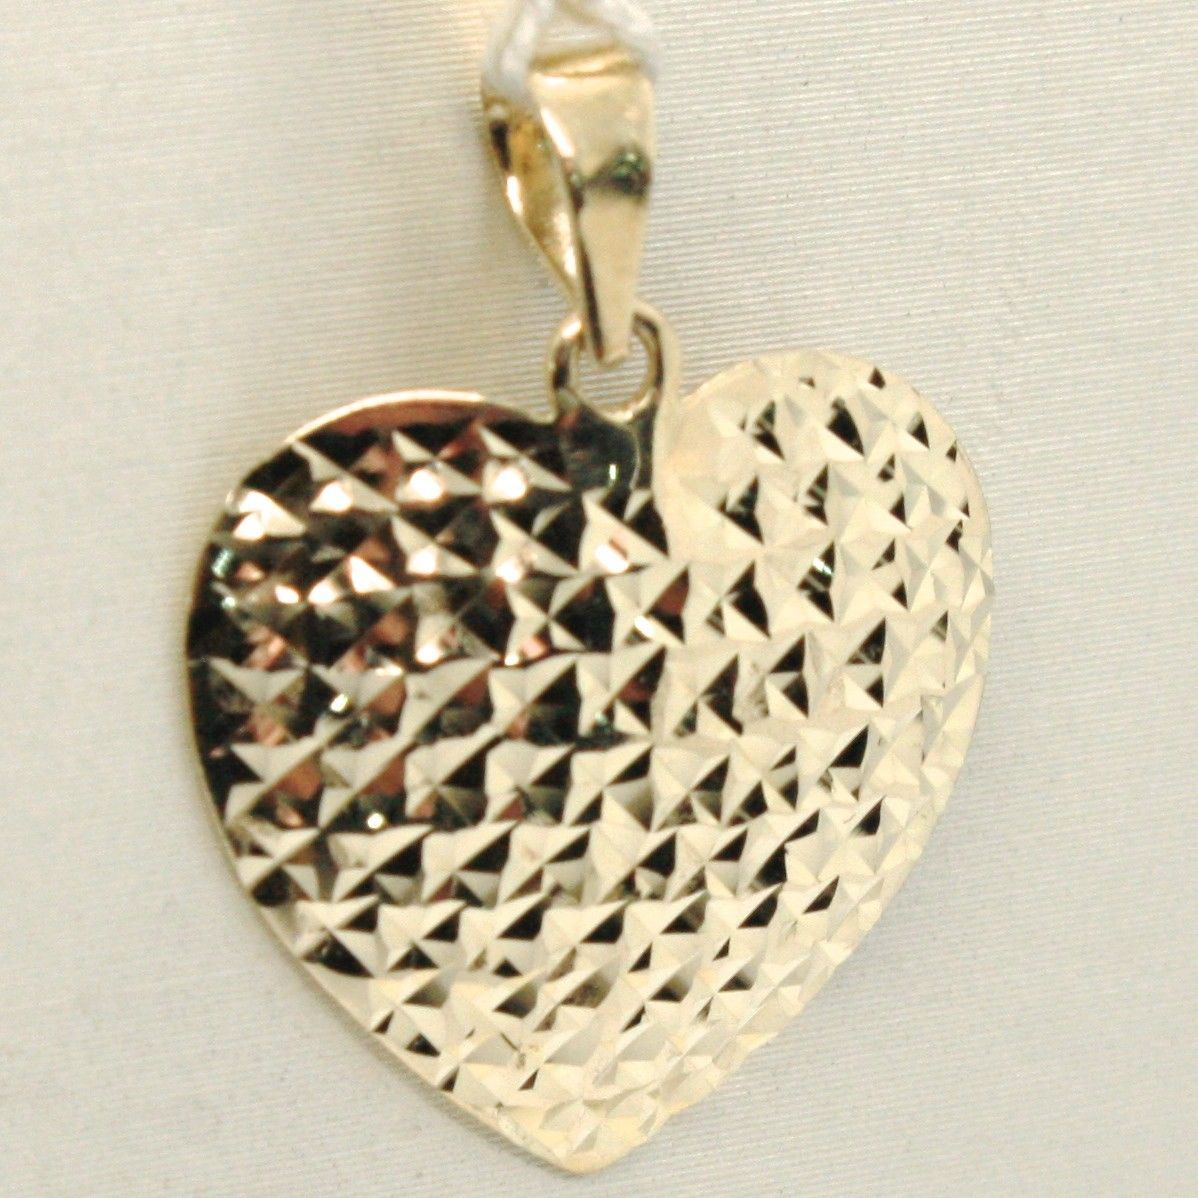 18K YELLOW GOLD HEART PENDANT, CHARMS, FINELY WORKED, CURVED, MADE IN ITALY